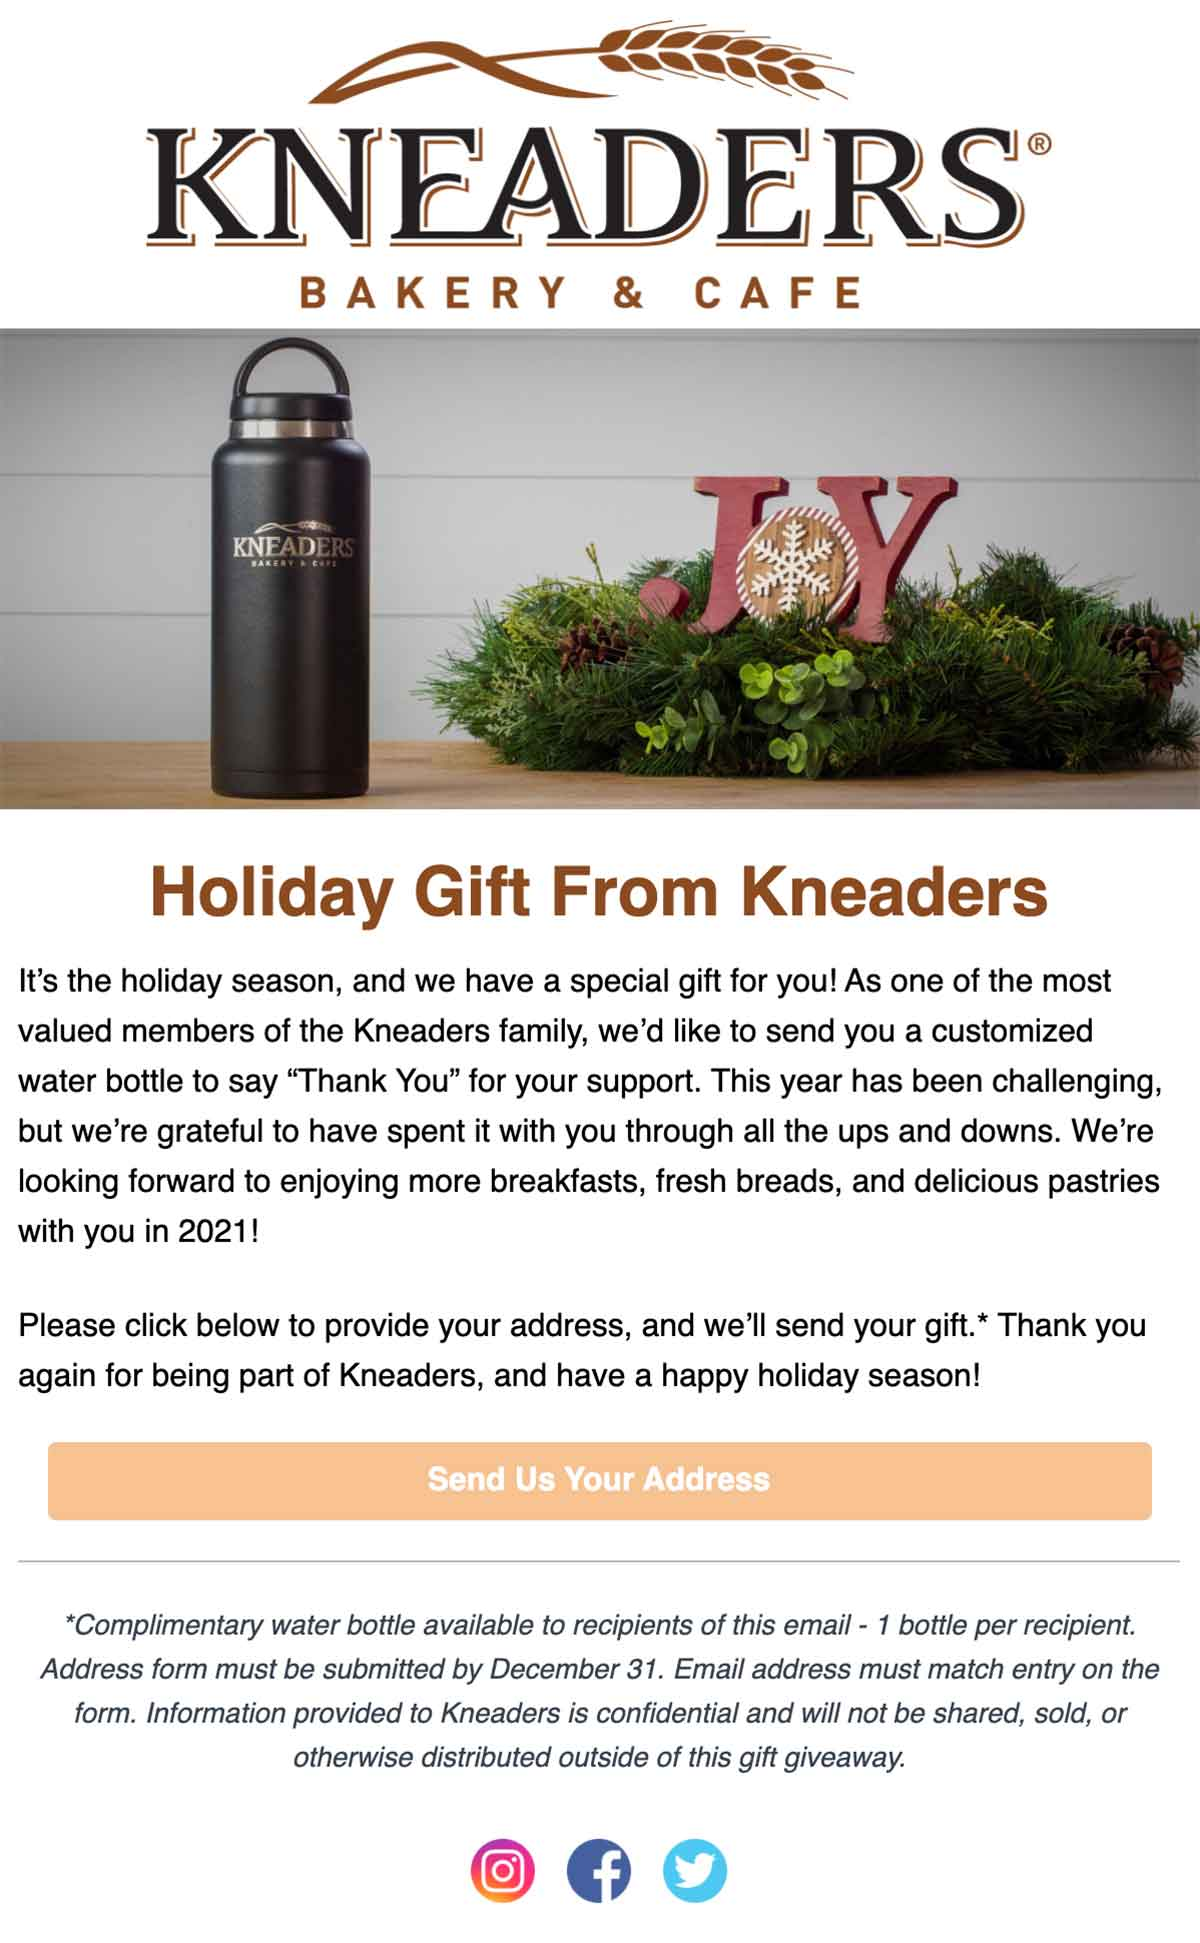 Kneaders Holiday Gift email